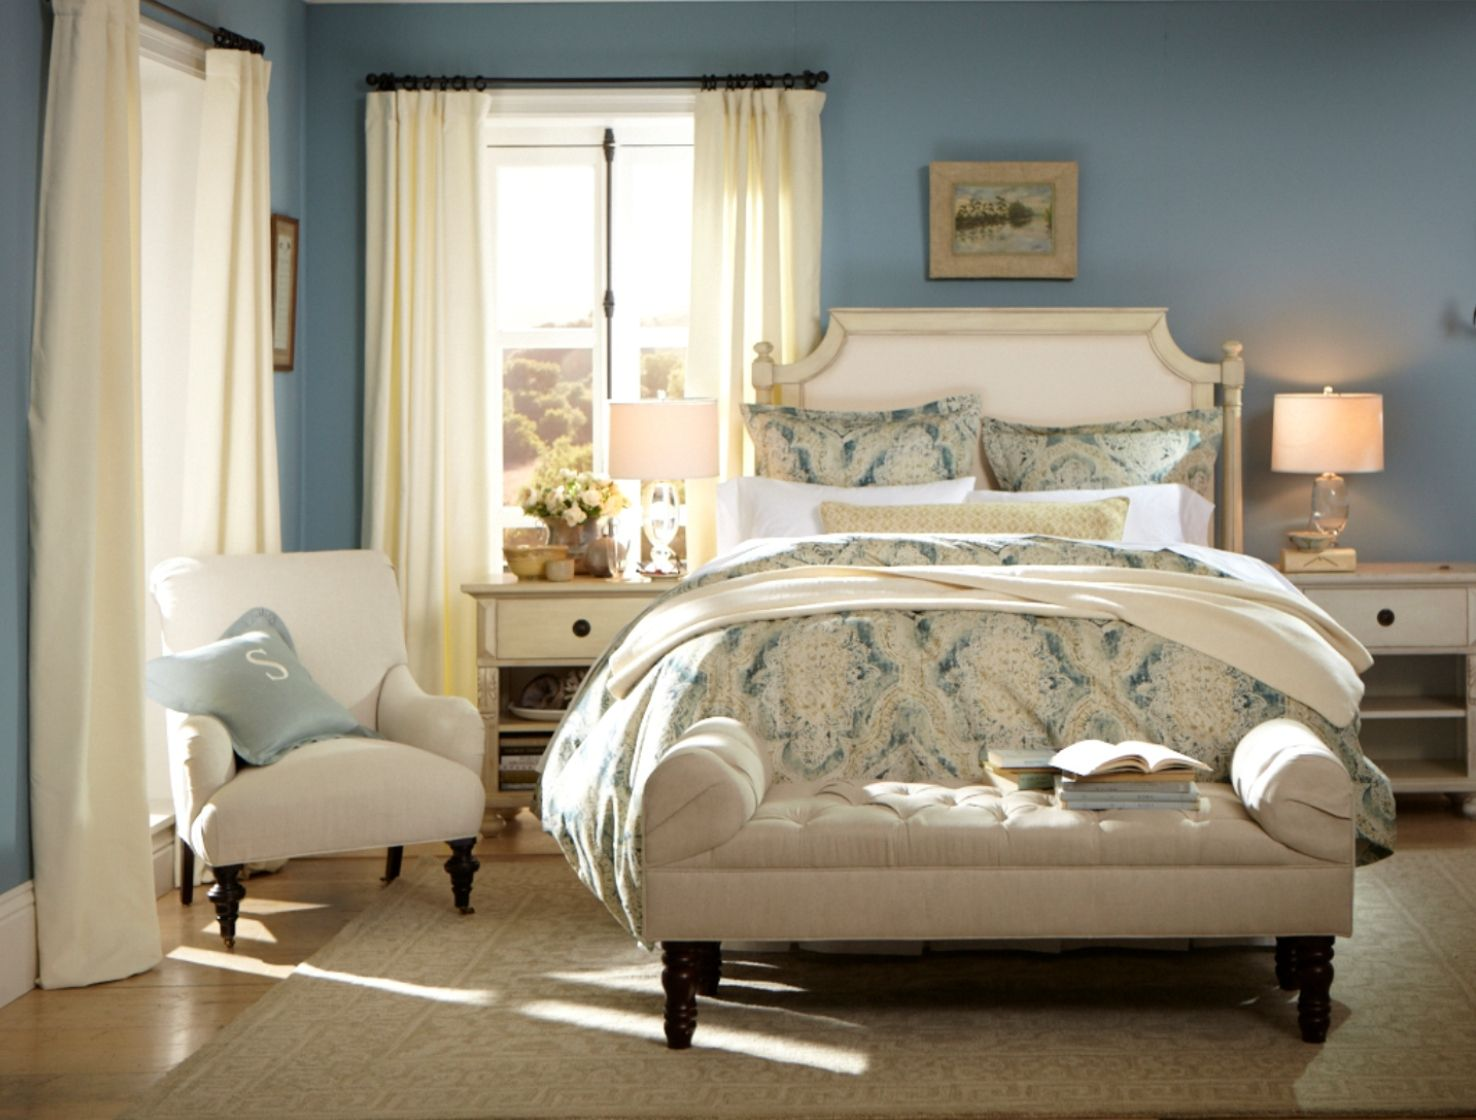 pottery barn bedrooms paint colors bedroom featuring paint color smokey blue sw 7604 from 19515